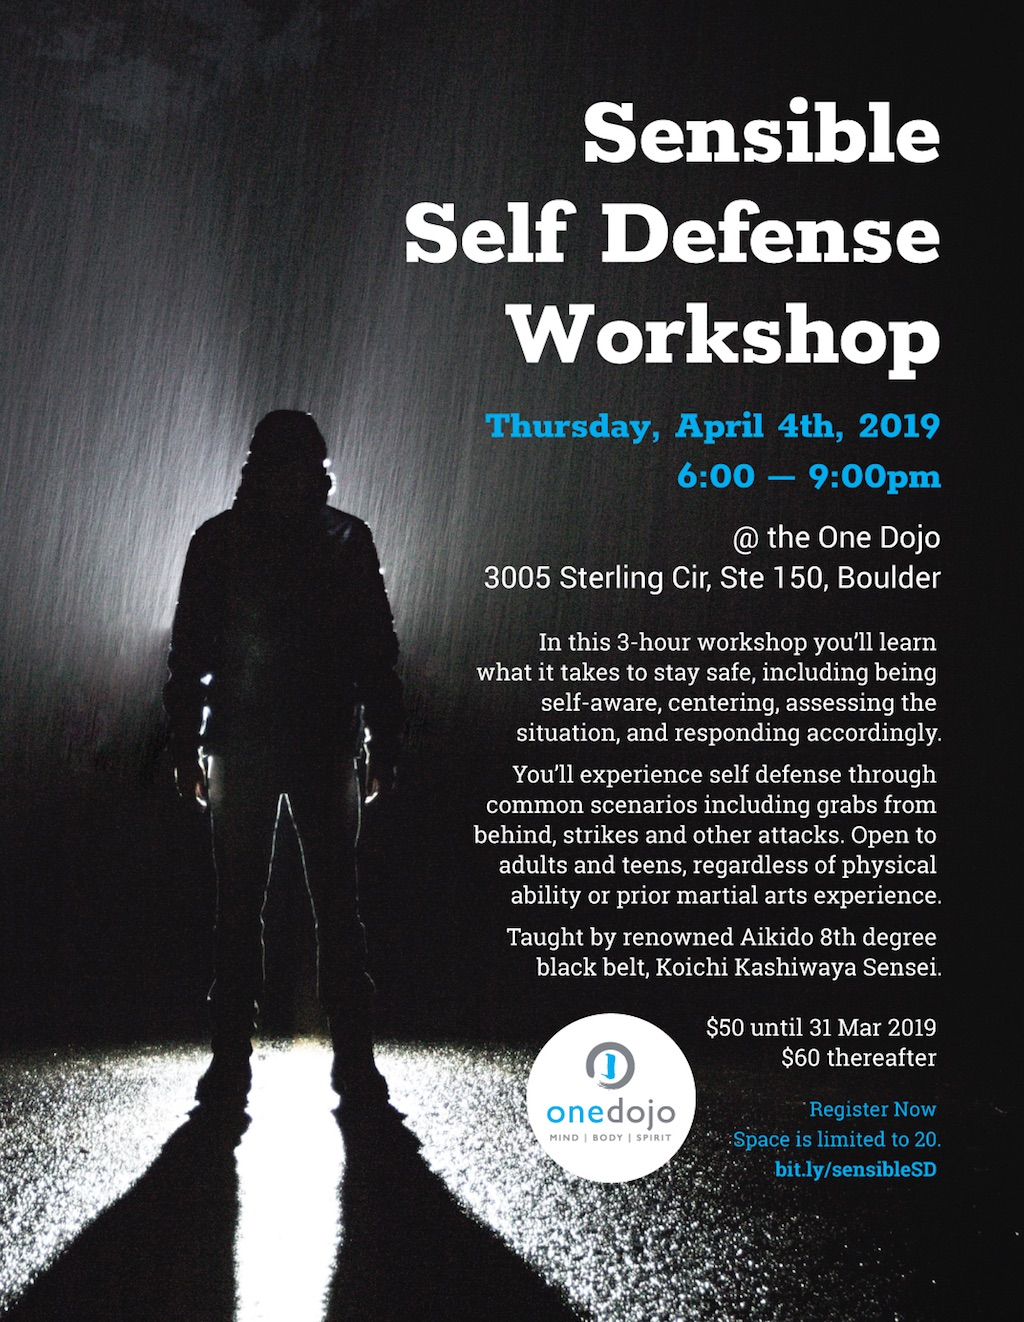 sensible self defense boulder flyer image